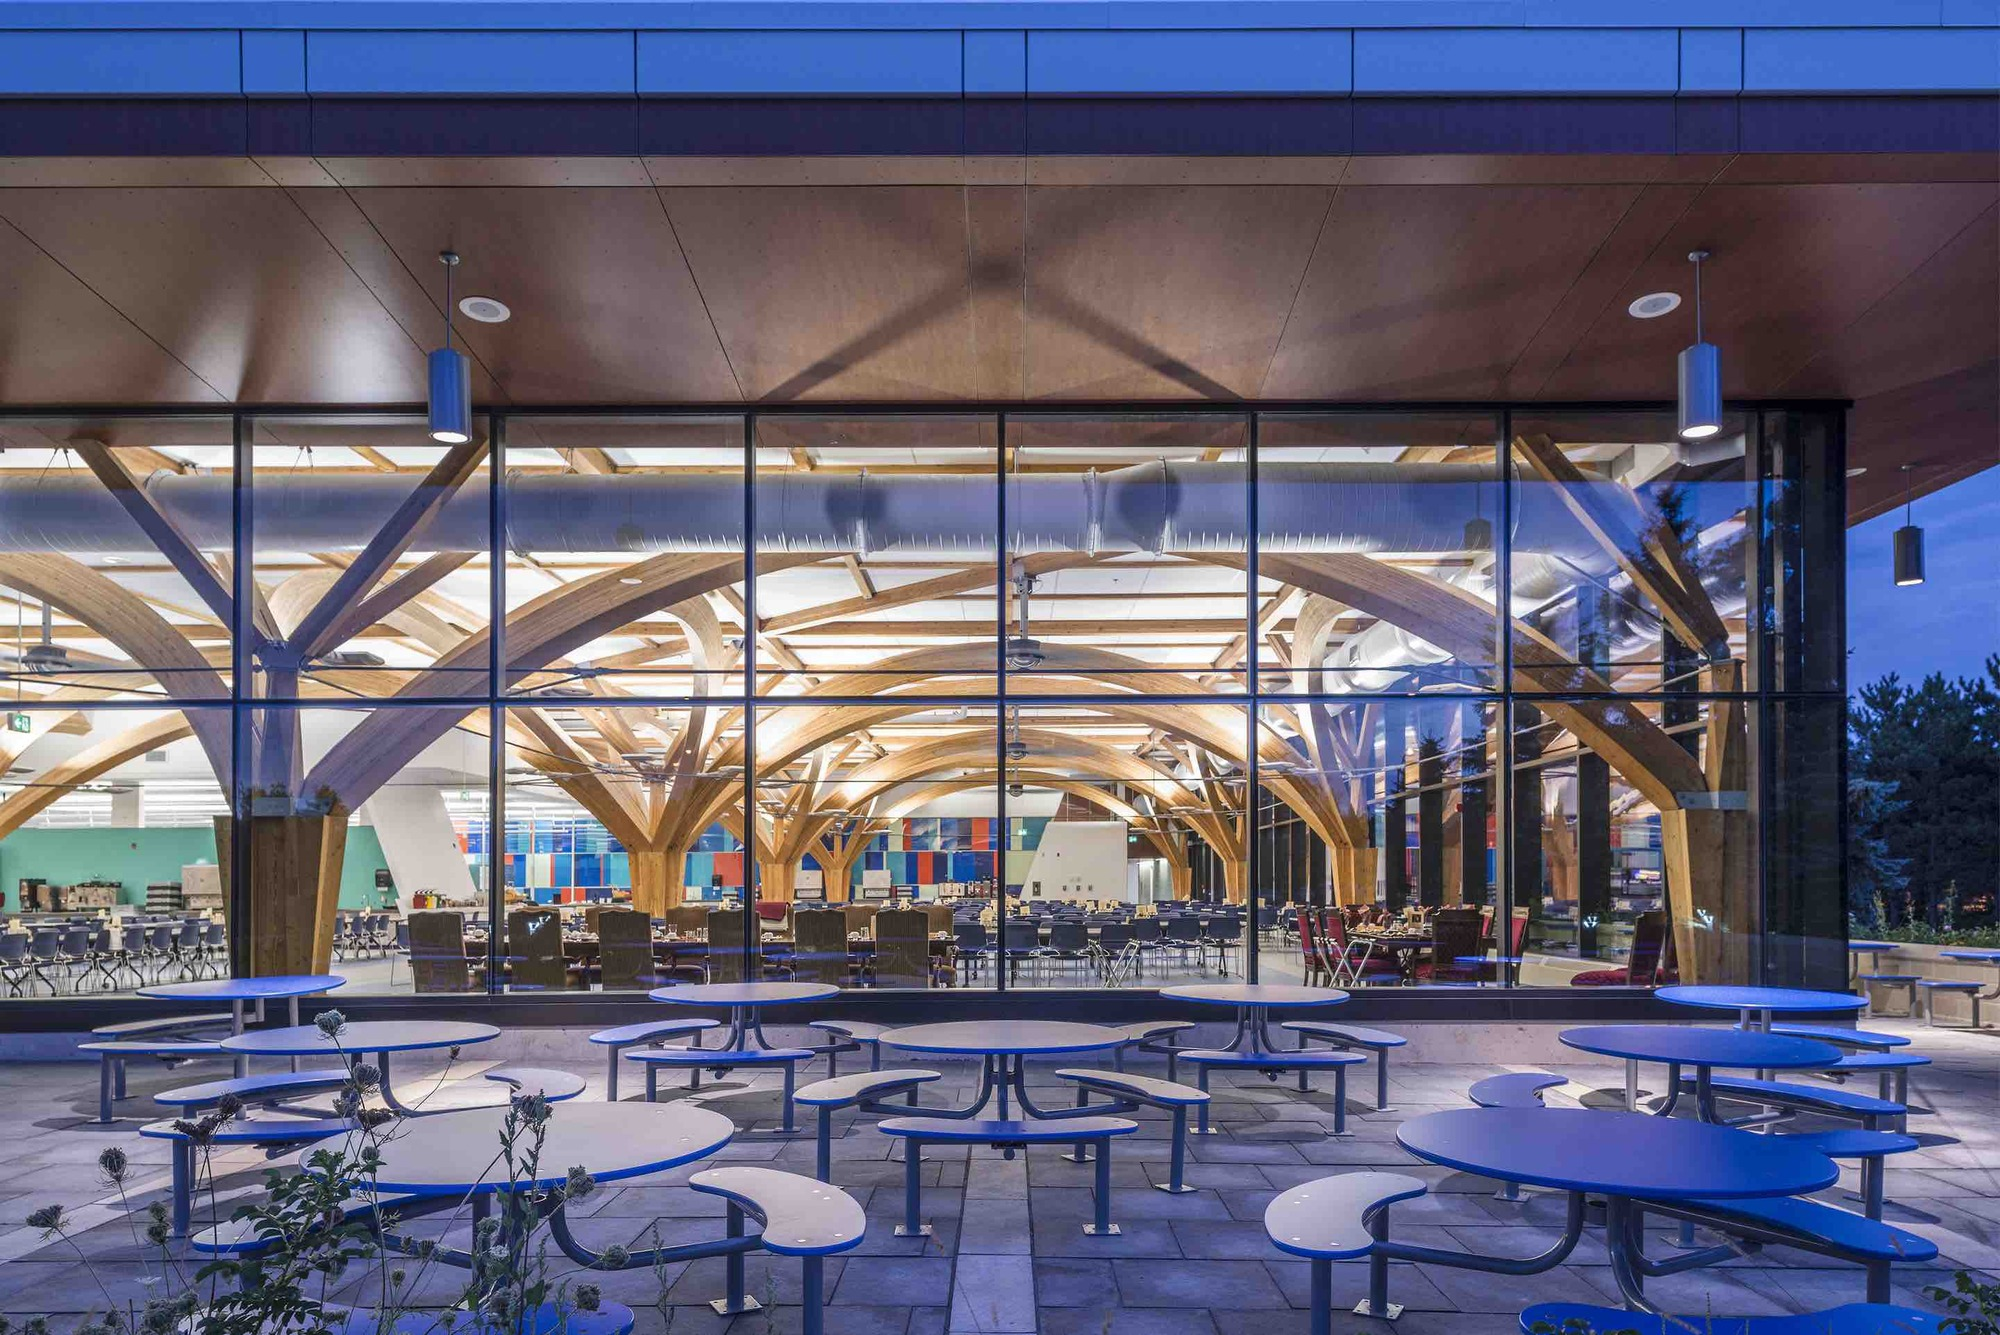 gallery of cfb borden all ranks kitchen and dining facilities    fabriq architecture   zas